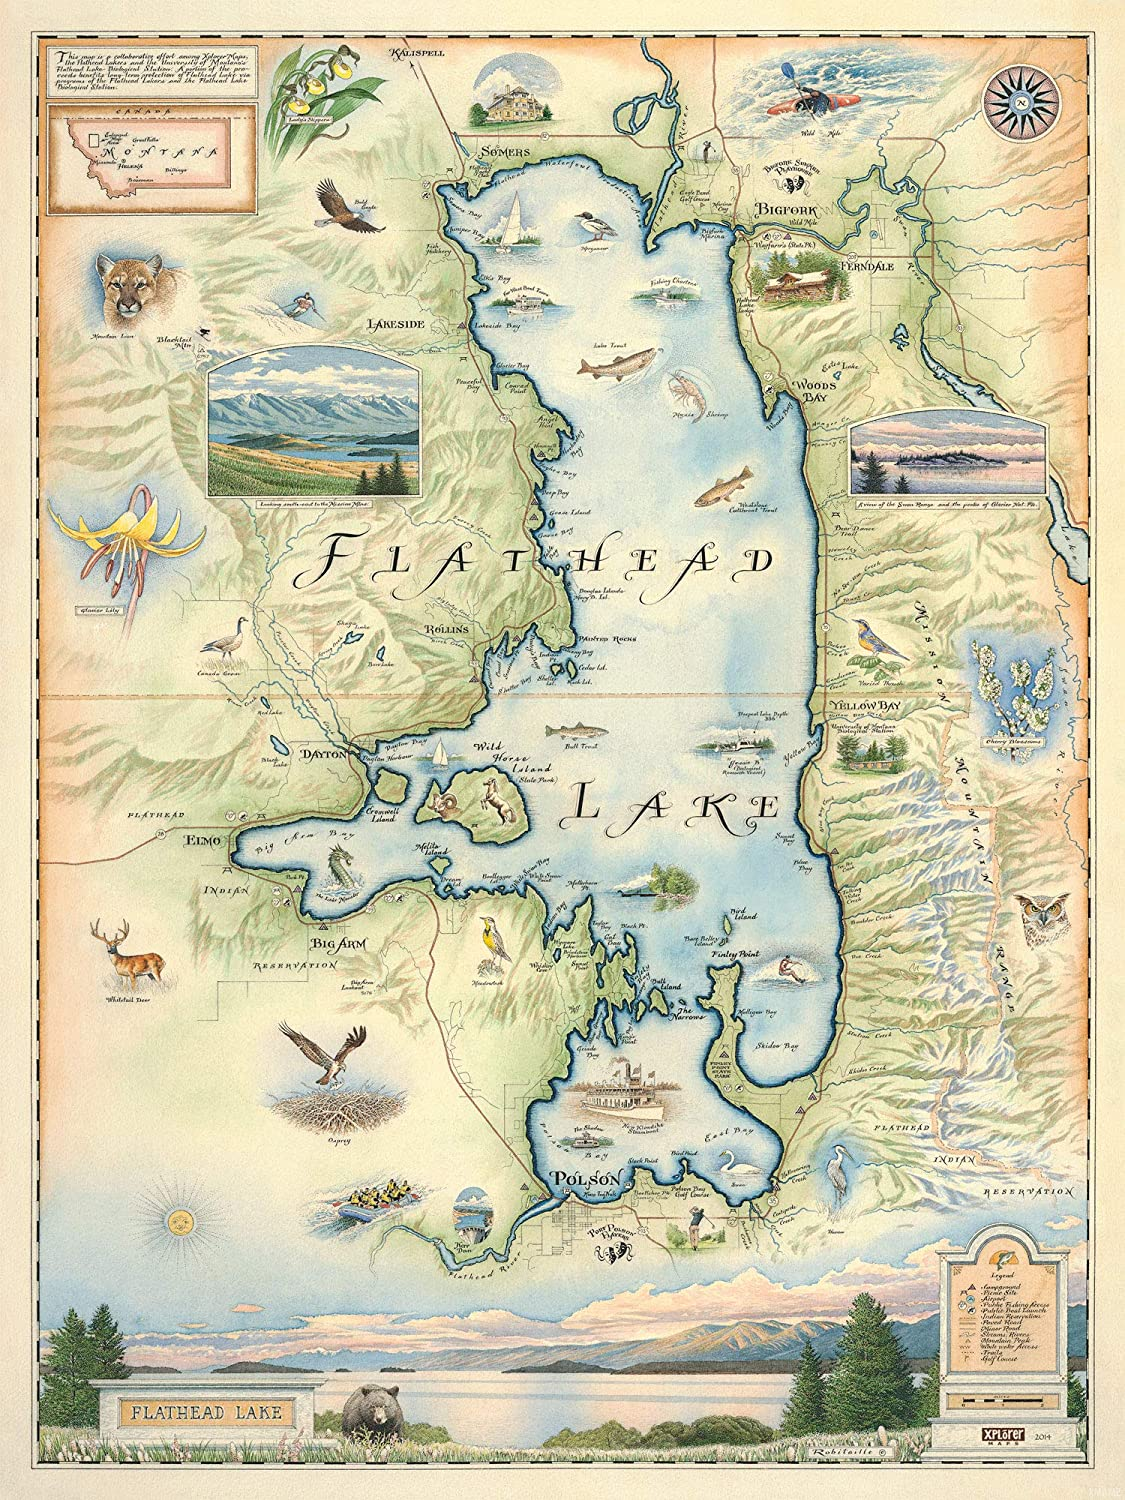 map flathead lake montana Flathead Lake Montana Map Wall Art Poster Authentic Hand Drawn map flathead lake montana